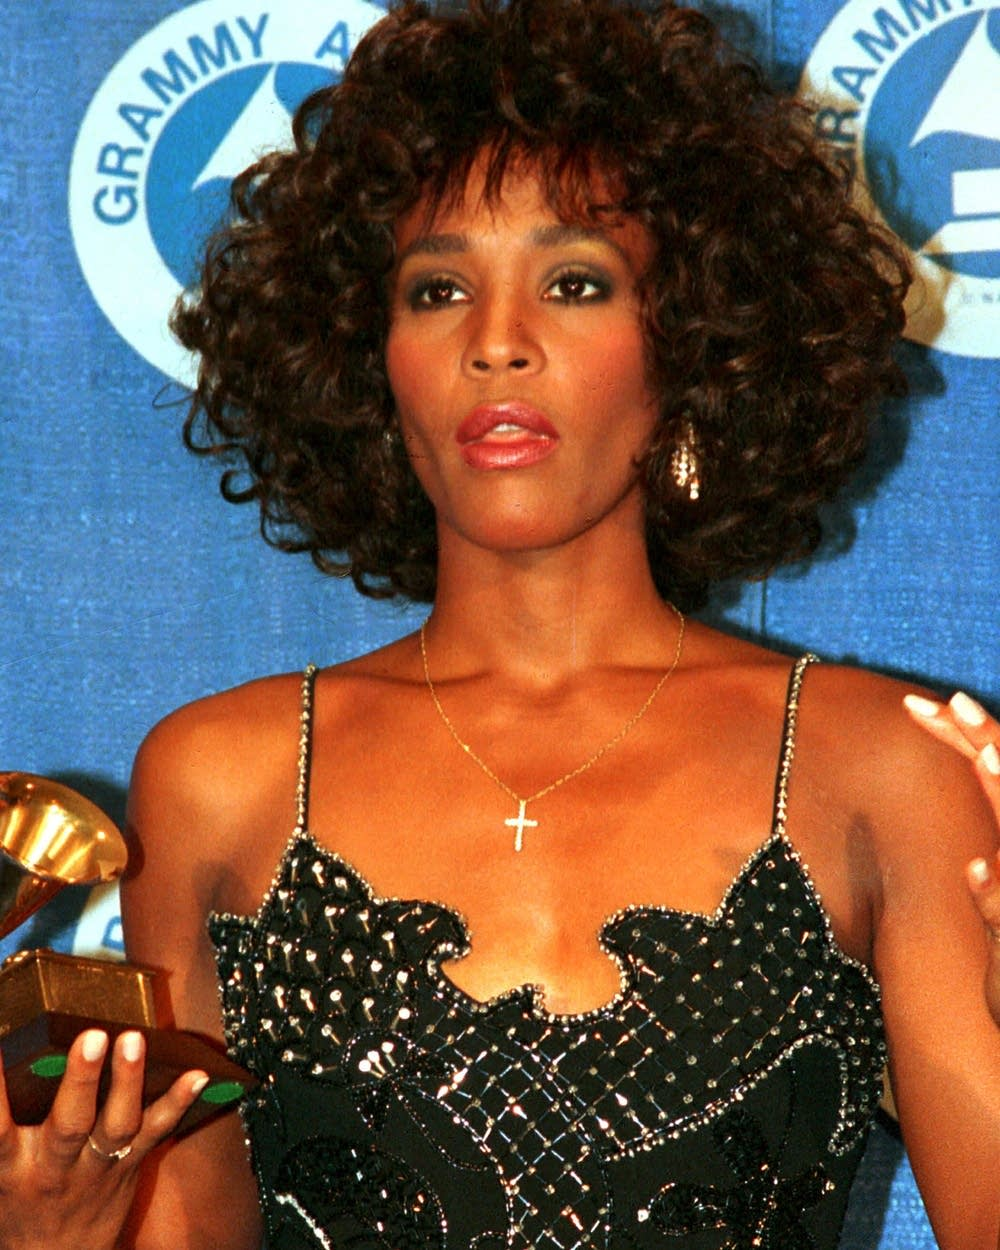 New Whitney Houston documentary a 'compelling portrait'